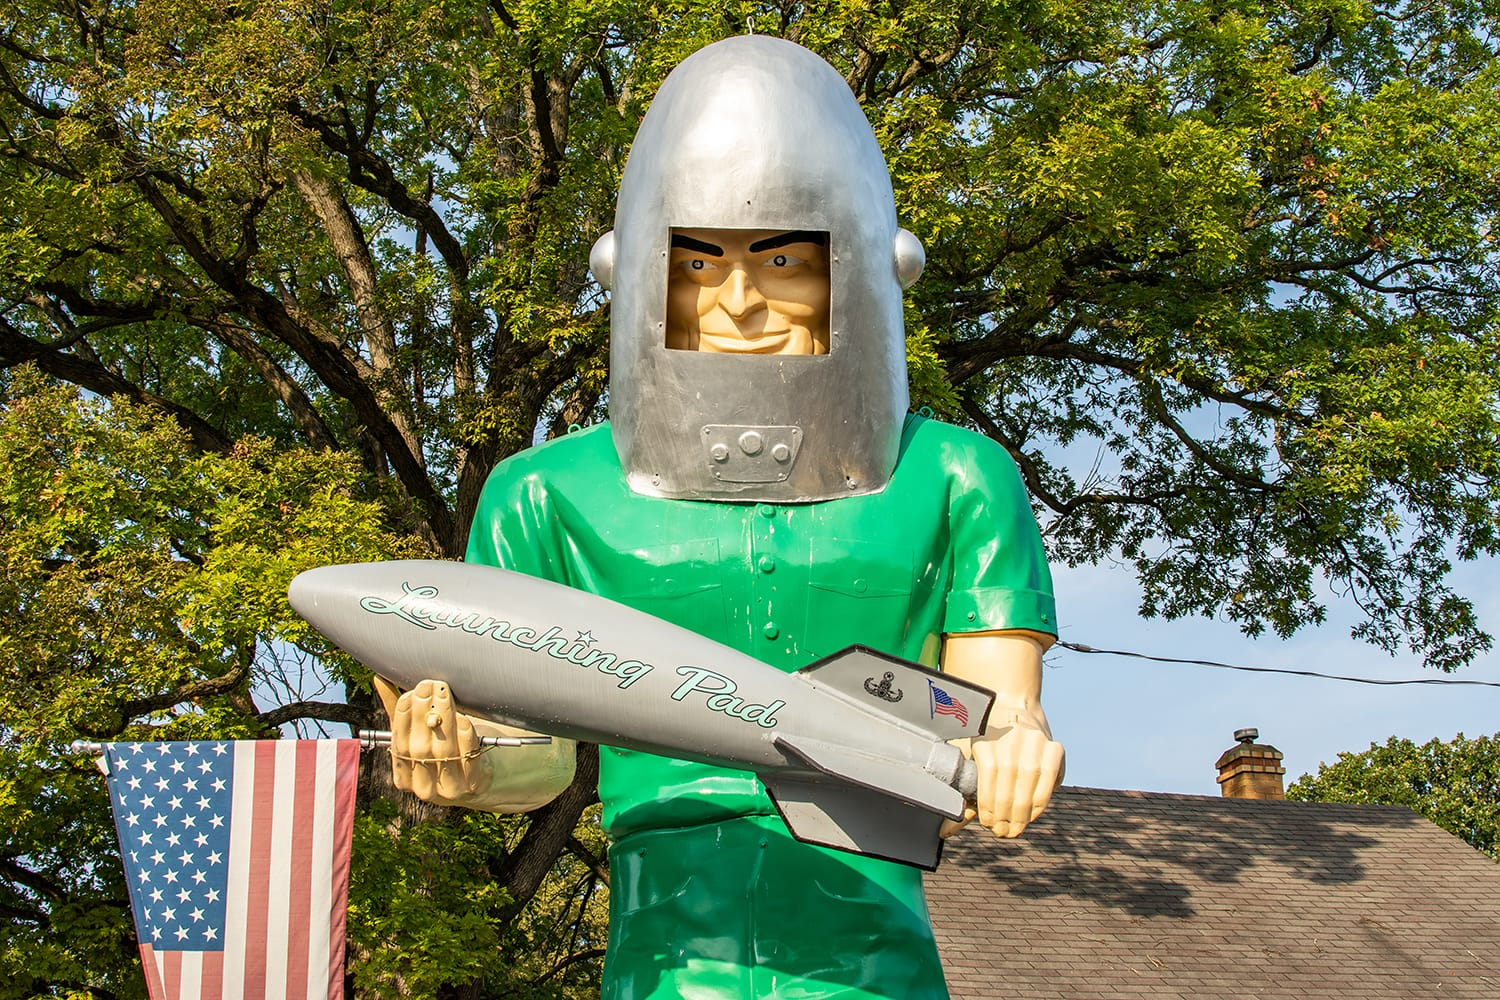 The Gemini Giant roadside attraction along the historic Route 66 in Wilmington, Illinois